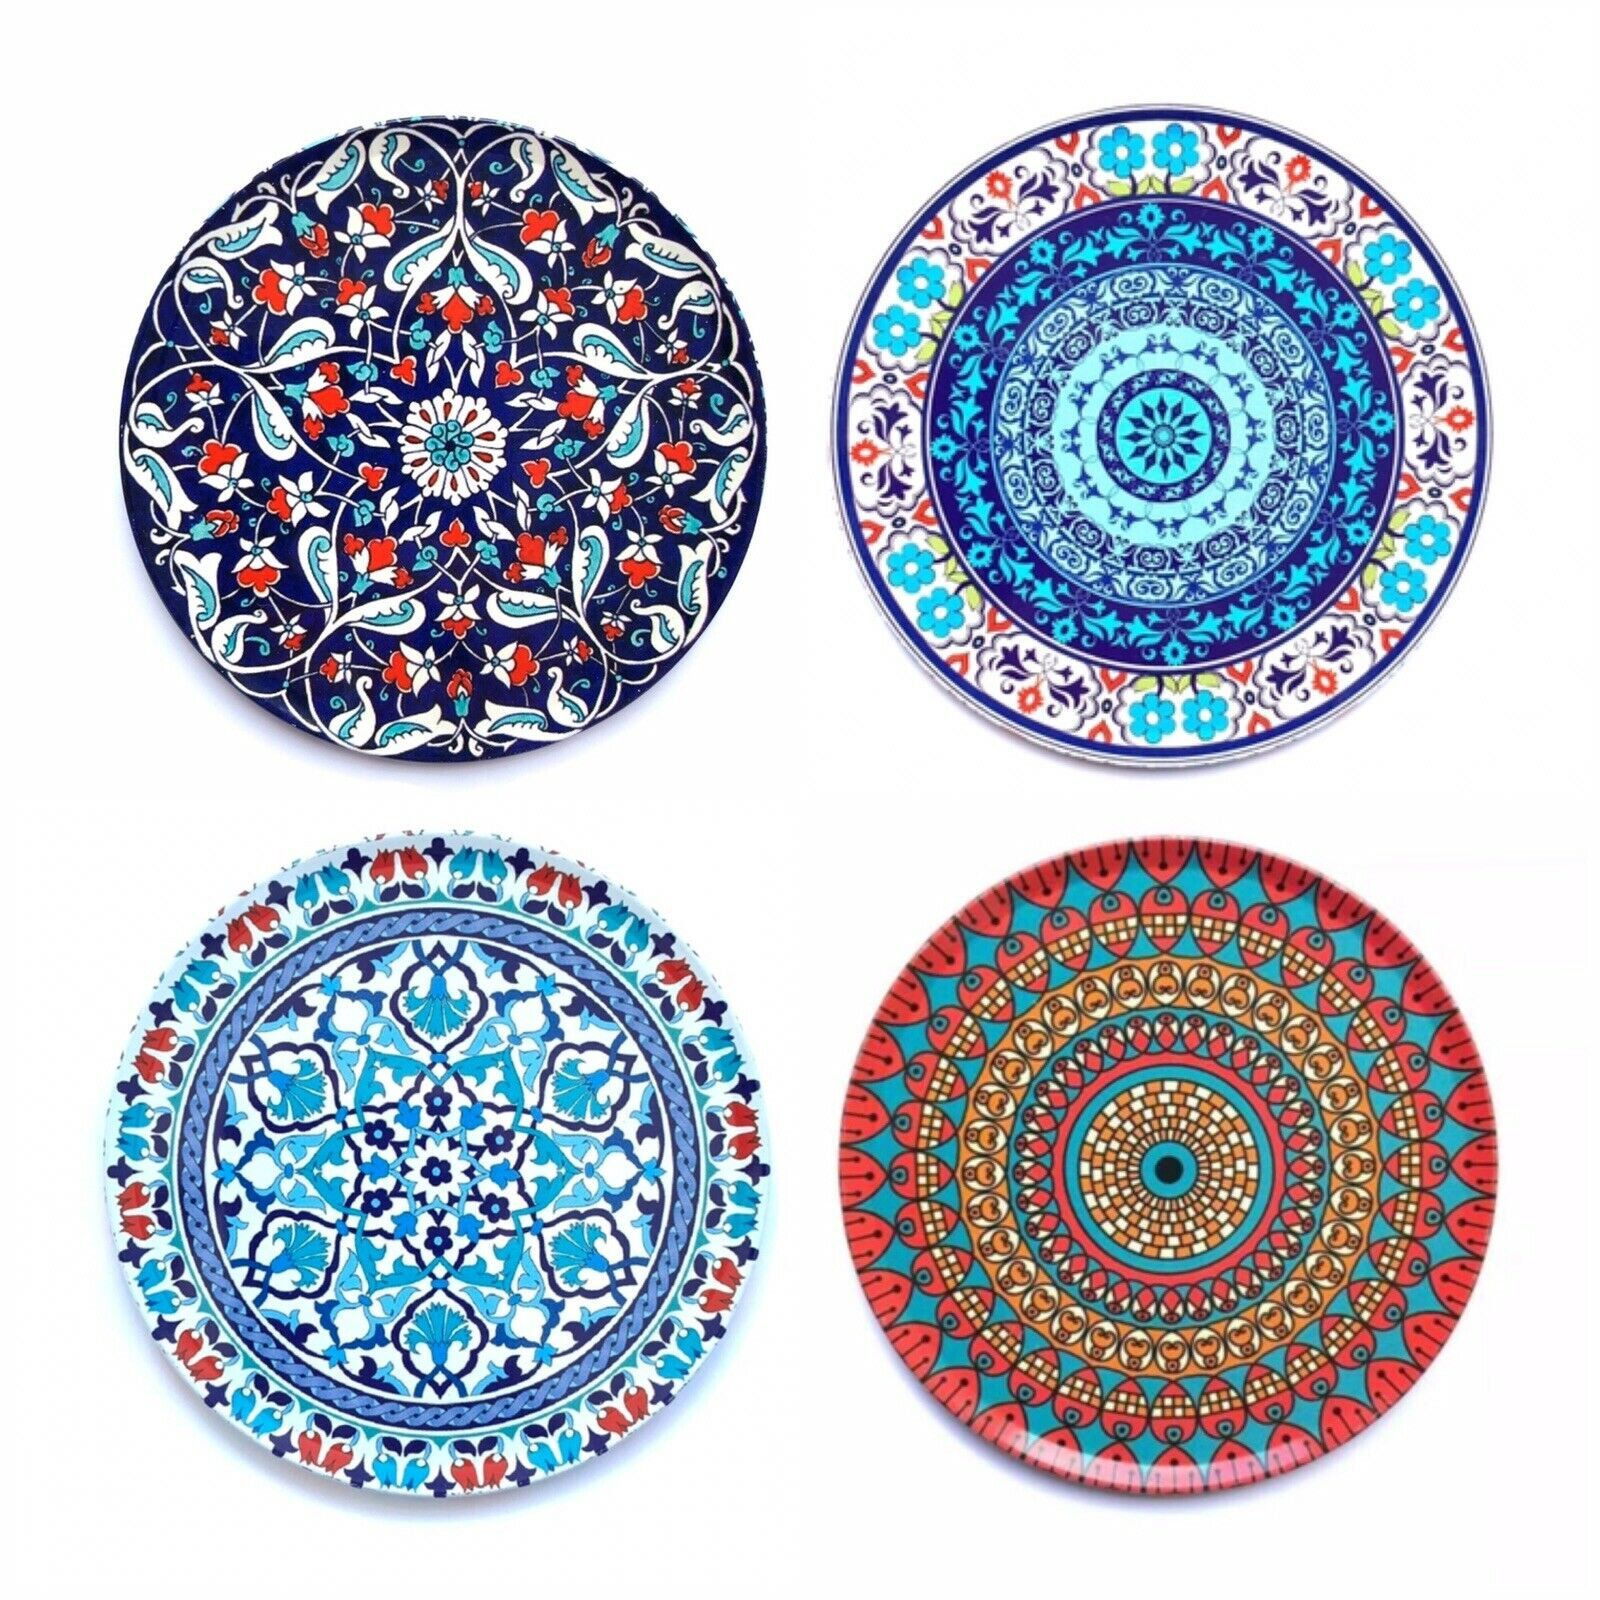 Set Of 4 Premium Mandala Coasters Decorative Coasters For Glass Cups Vases Candles On Dining Table Tin Cork Coasters Christmas Gift Cork Coasters Coasters Christmas Gift Items